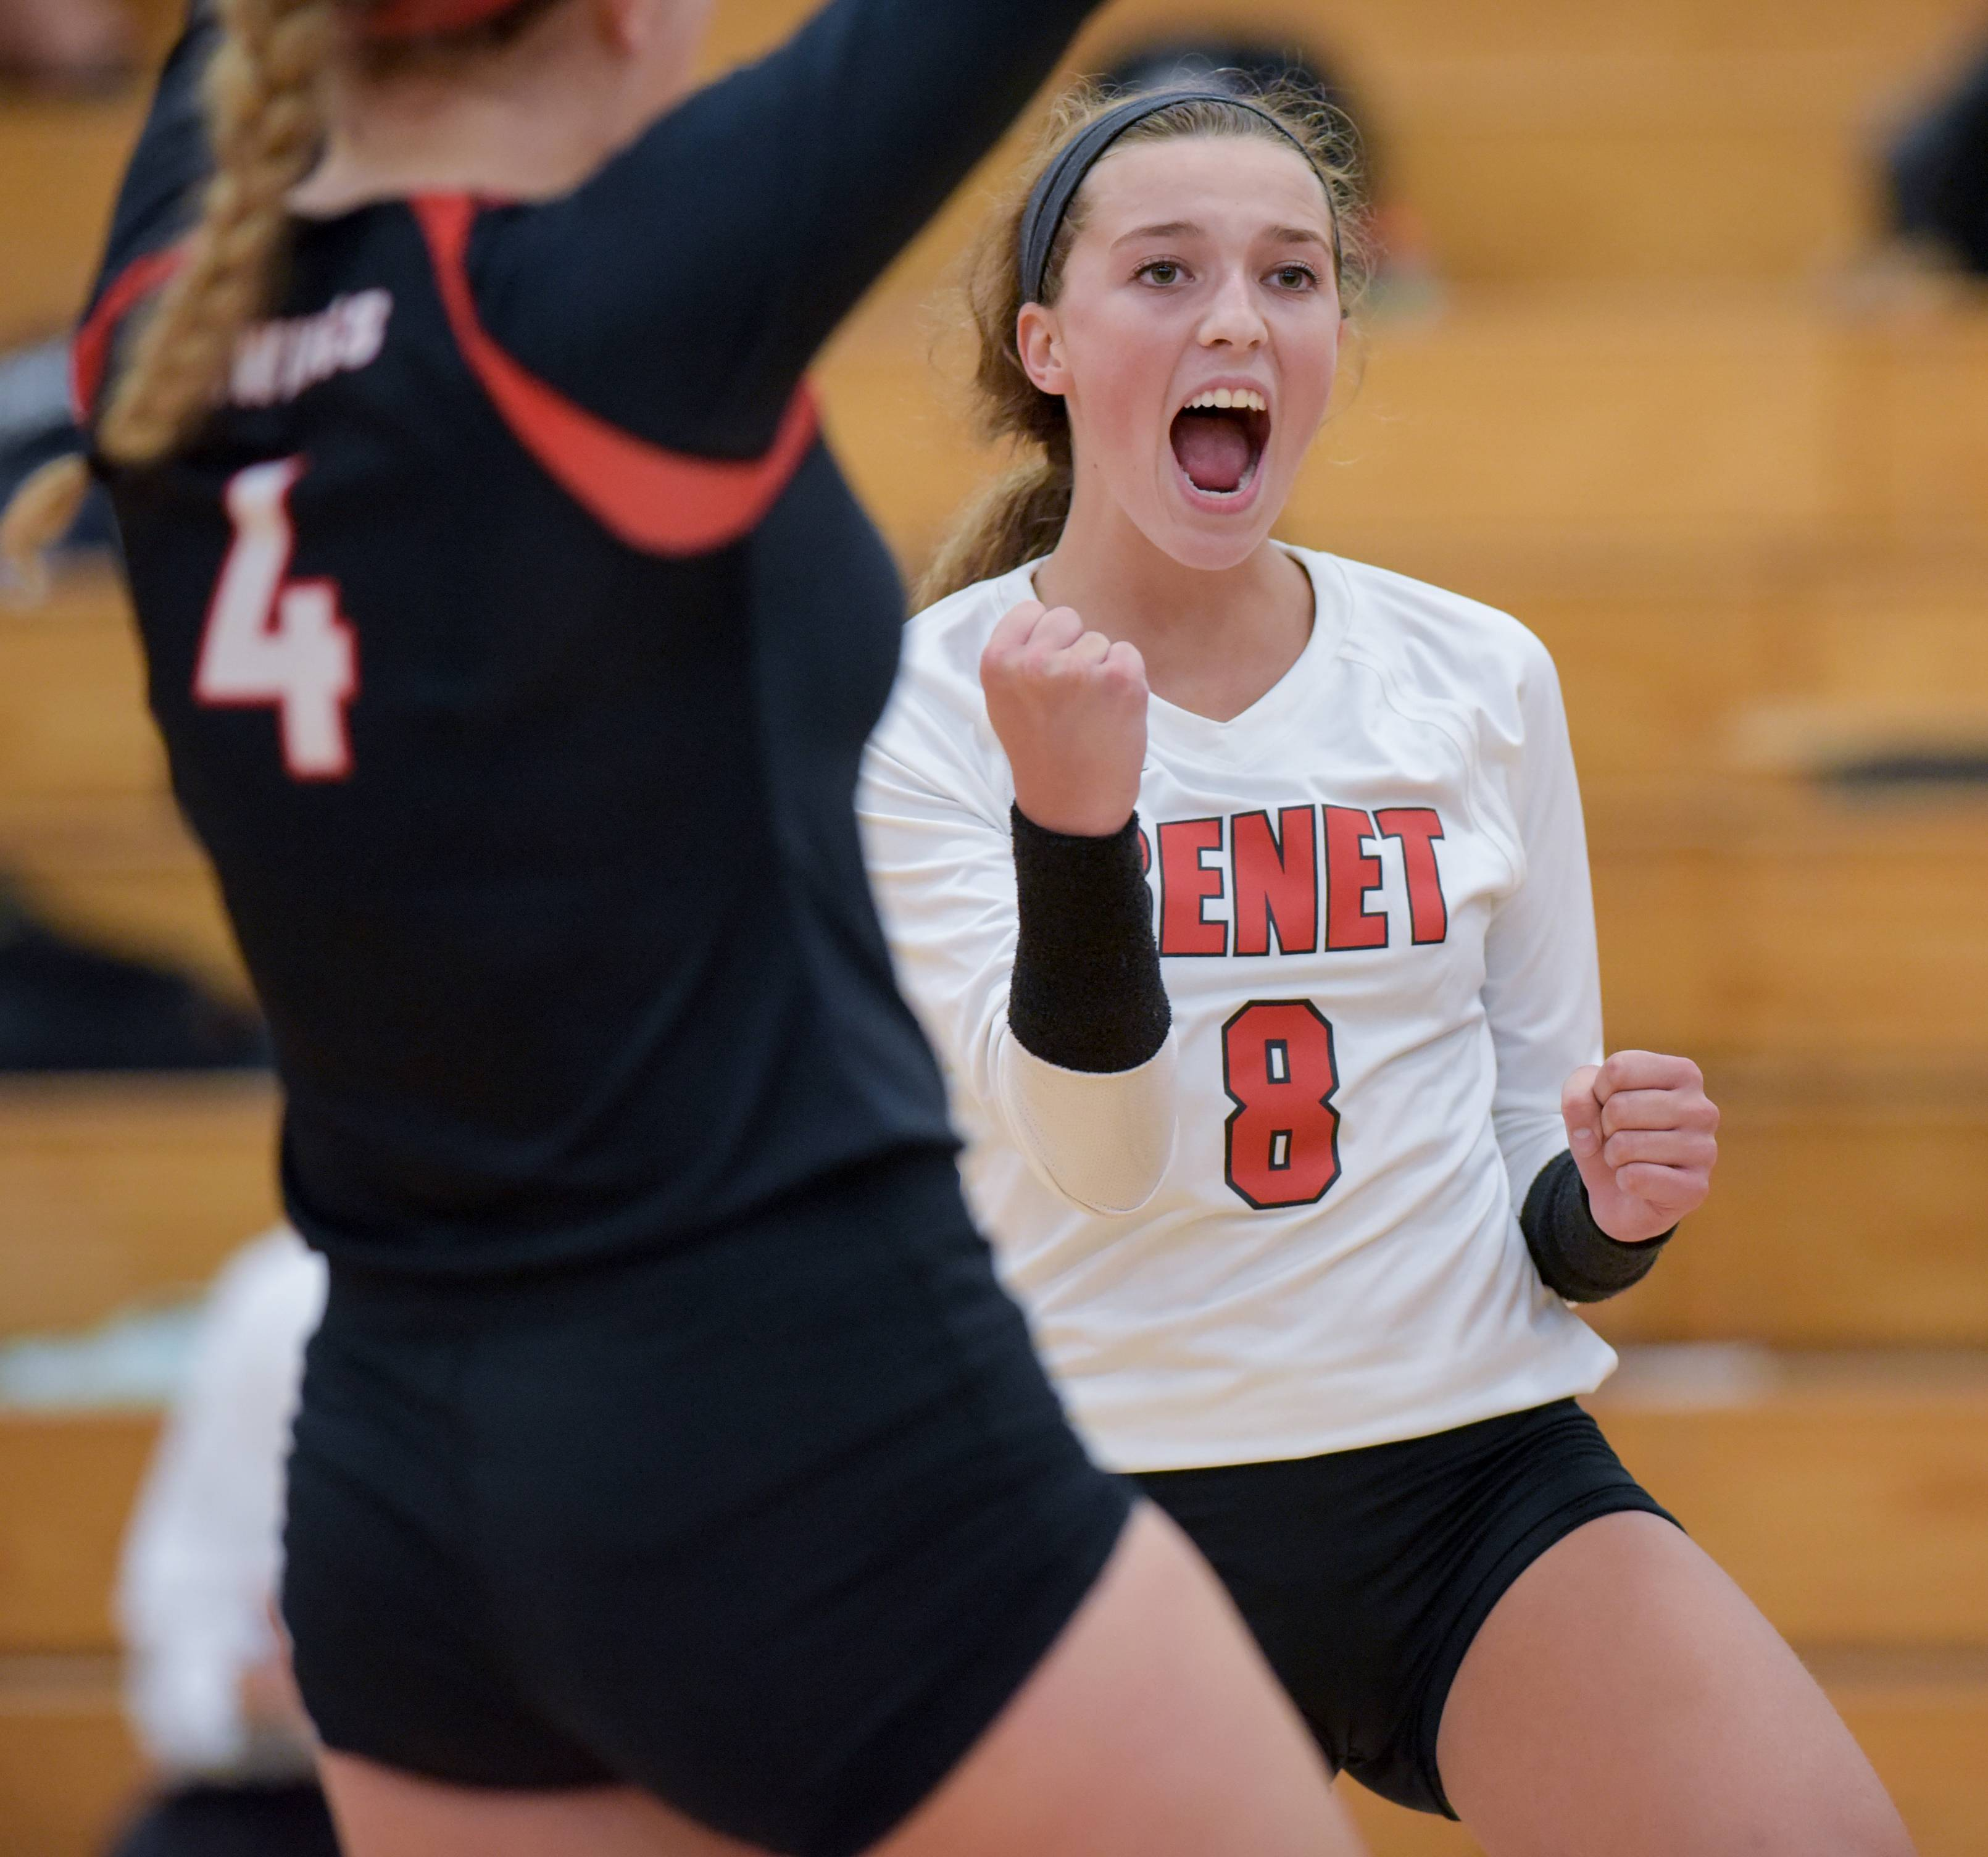 Benet Academy's Hattie Monson and Lauren Barnes celebrate a point during a win over Providence Catholic during girls varsity volleyball at home in Lisle Tuesday.